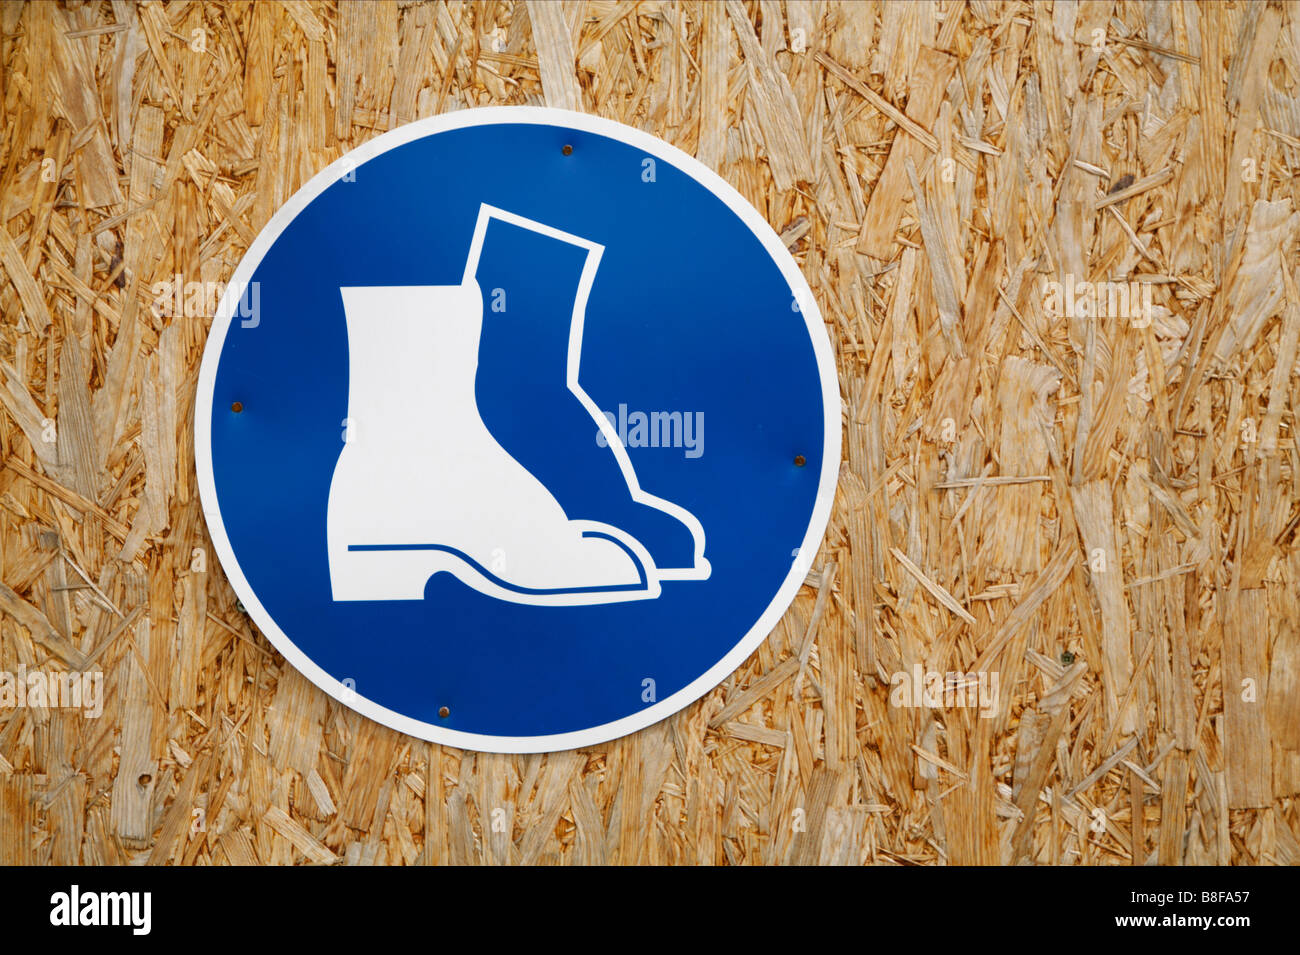 Wallboard Stock Photos & Wallboard Stock Images - Alamy